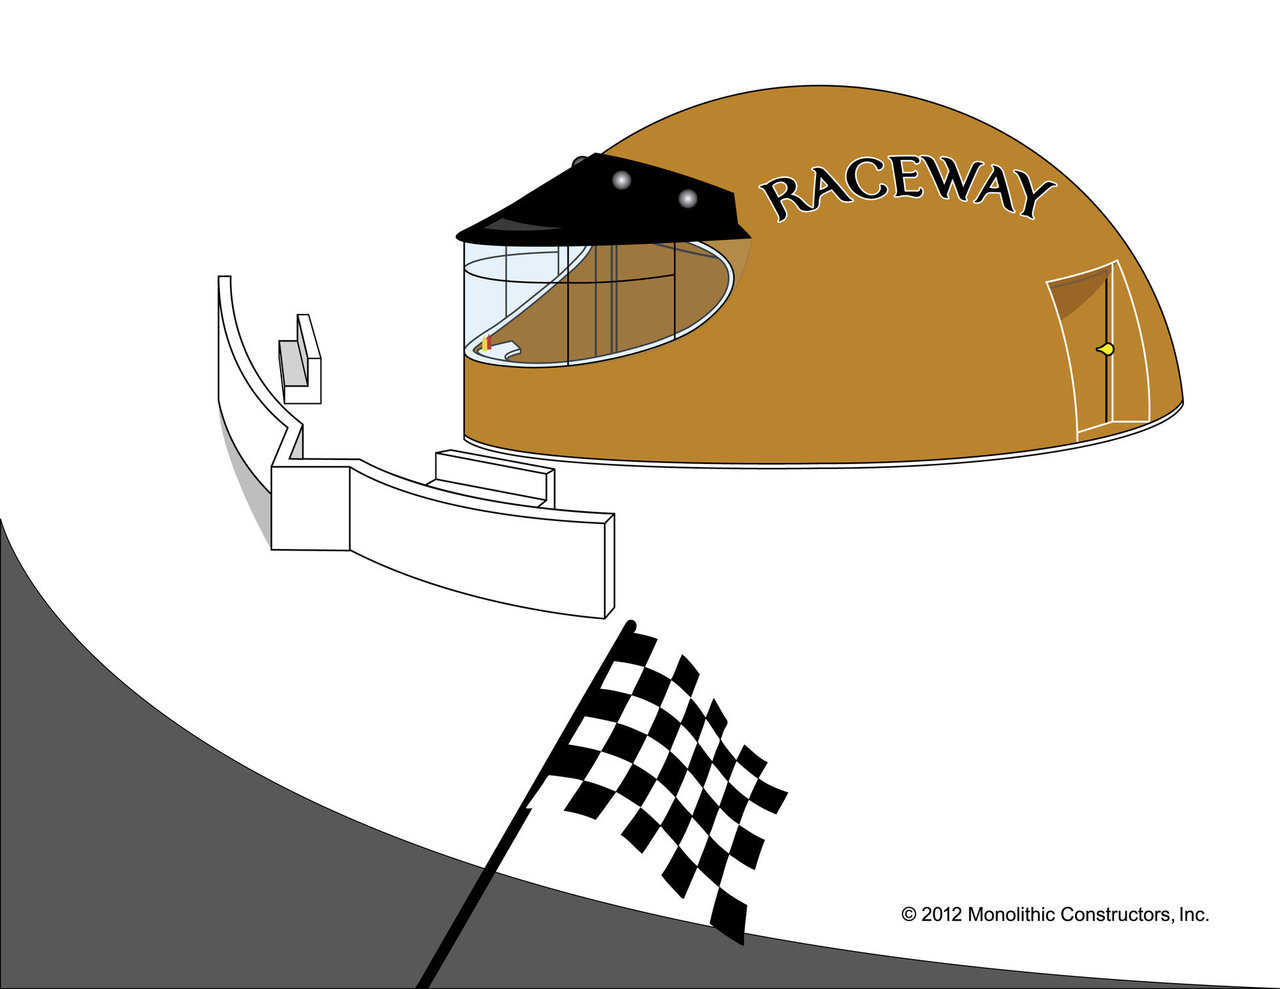 Lead the pack with a Monolithic motorcycle helmet concession dome. Everyone will race over for a snack!